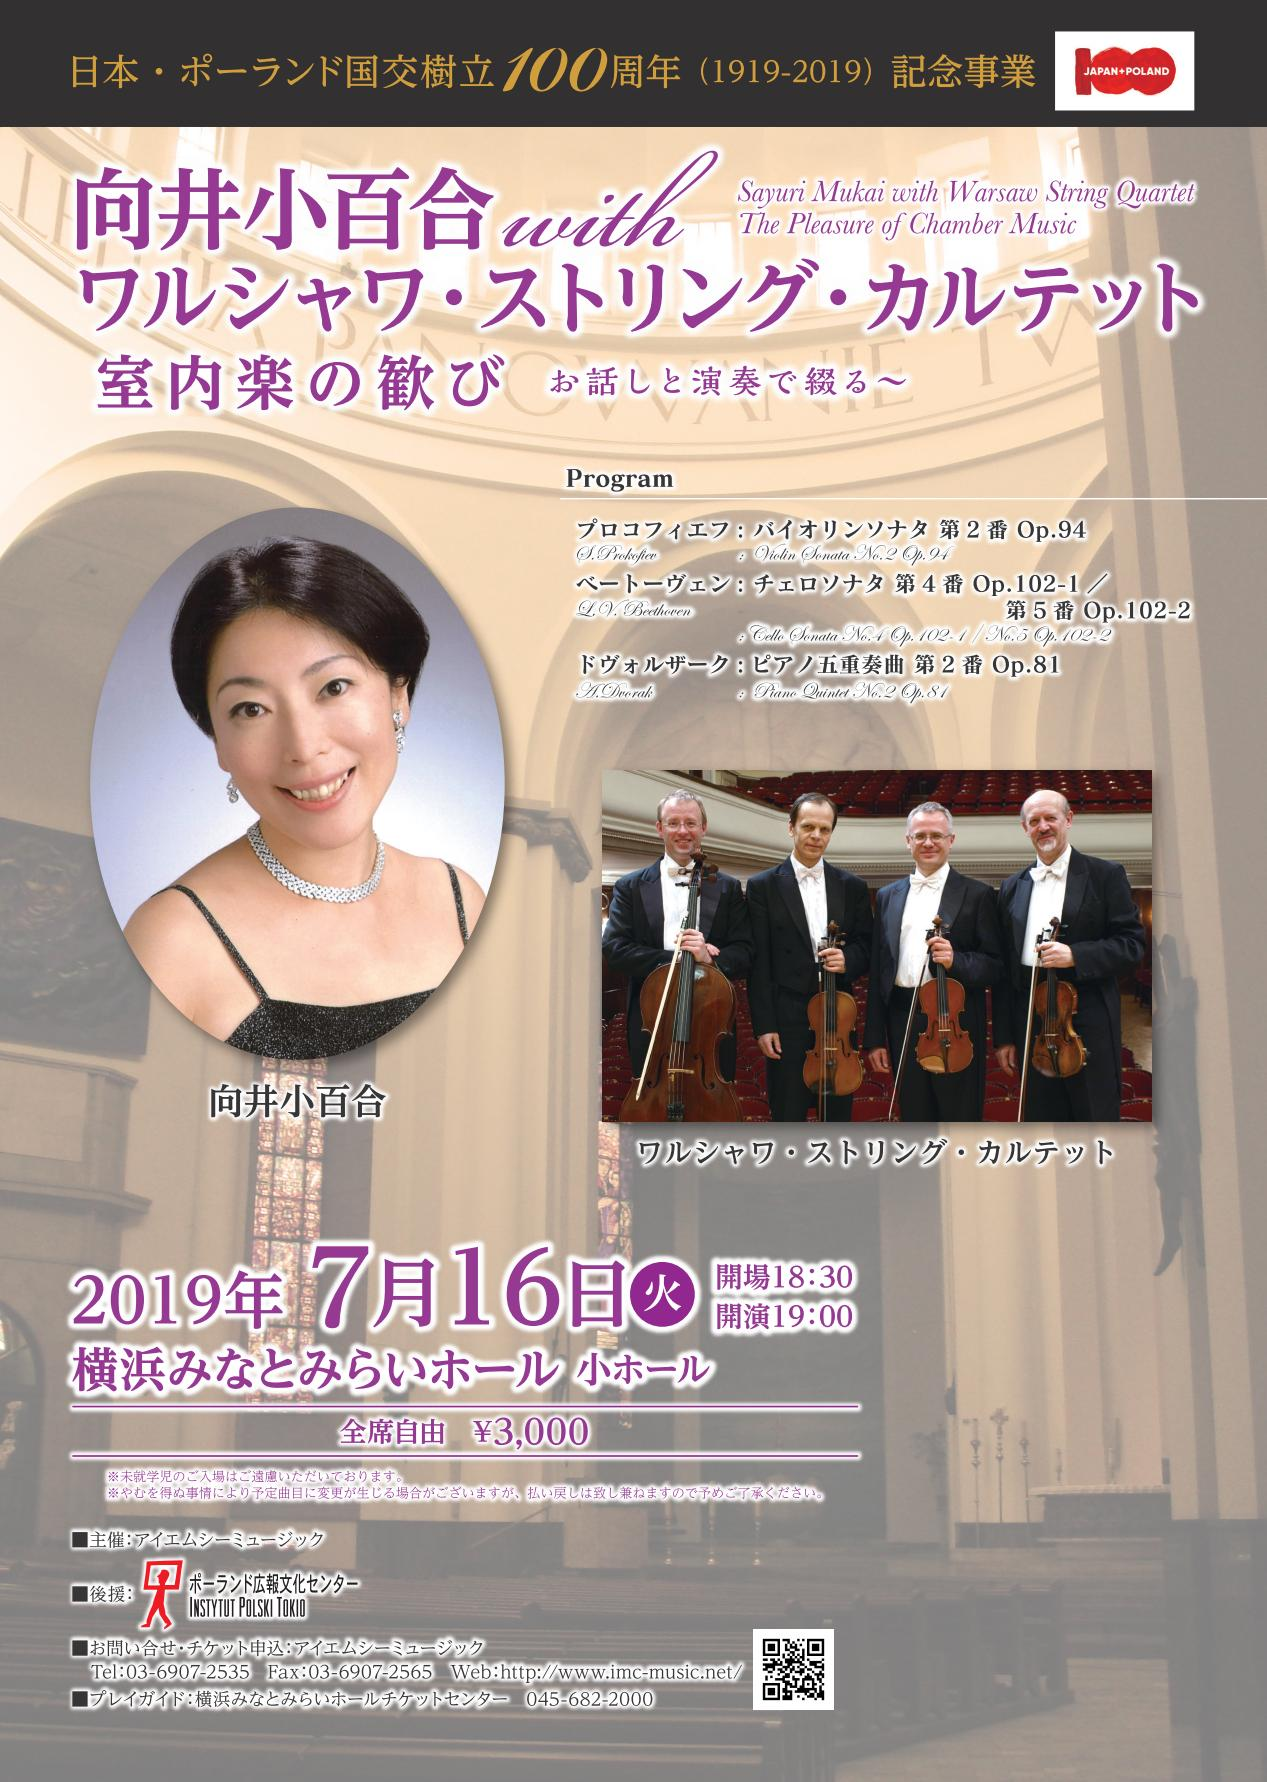 Sayuri Mukai with Warsaw String Quartet     The Pleasure of Chamber Music